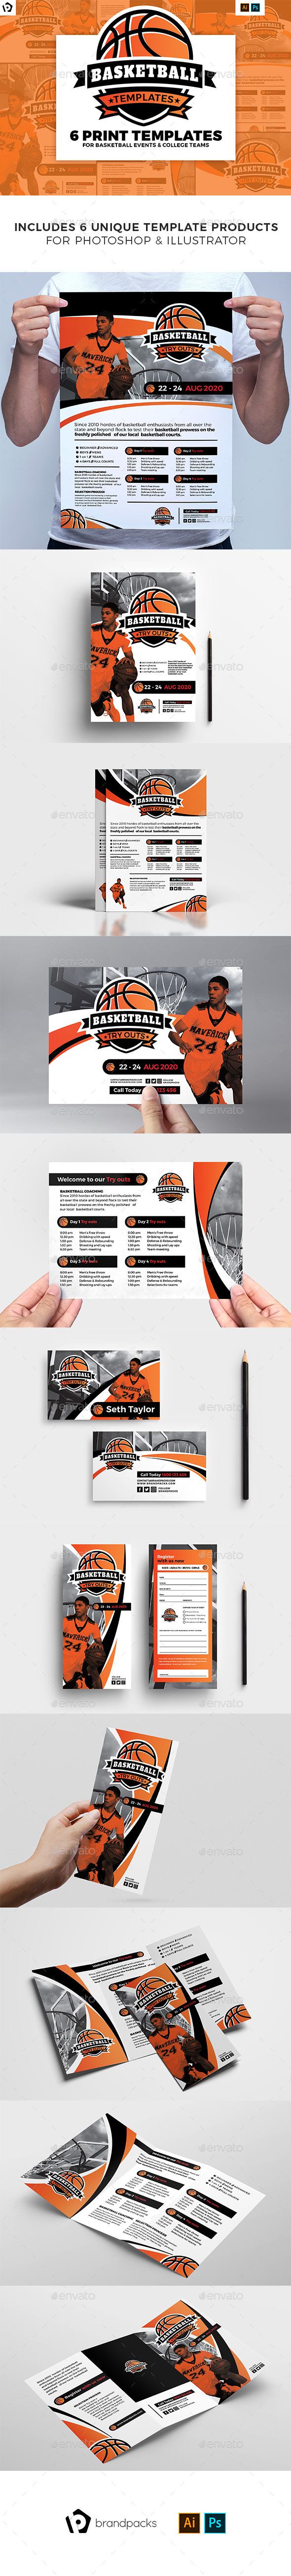 Basketball Templates Bundle - Sports Events